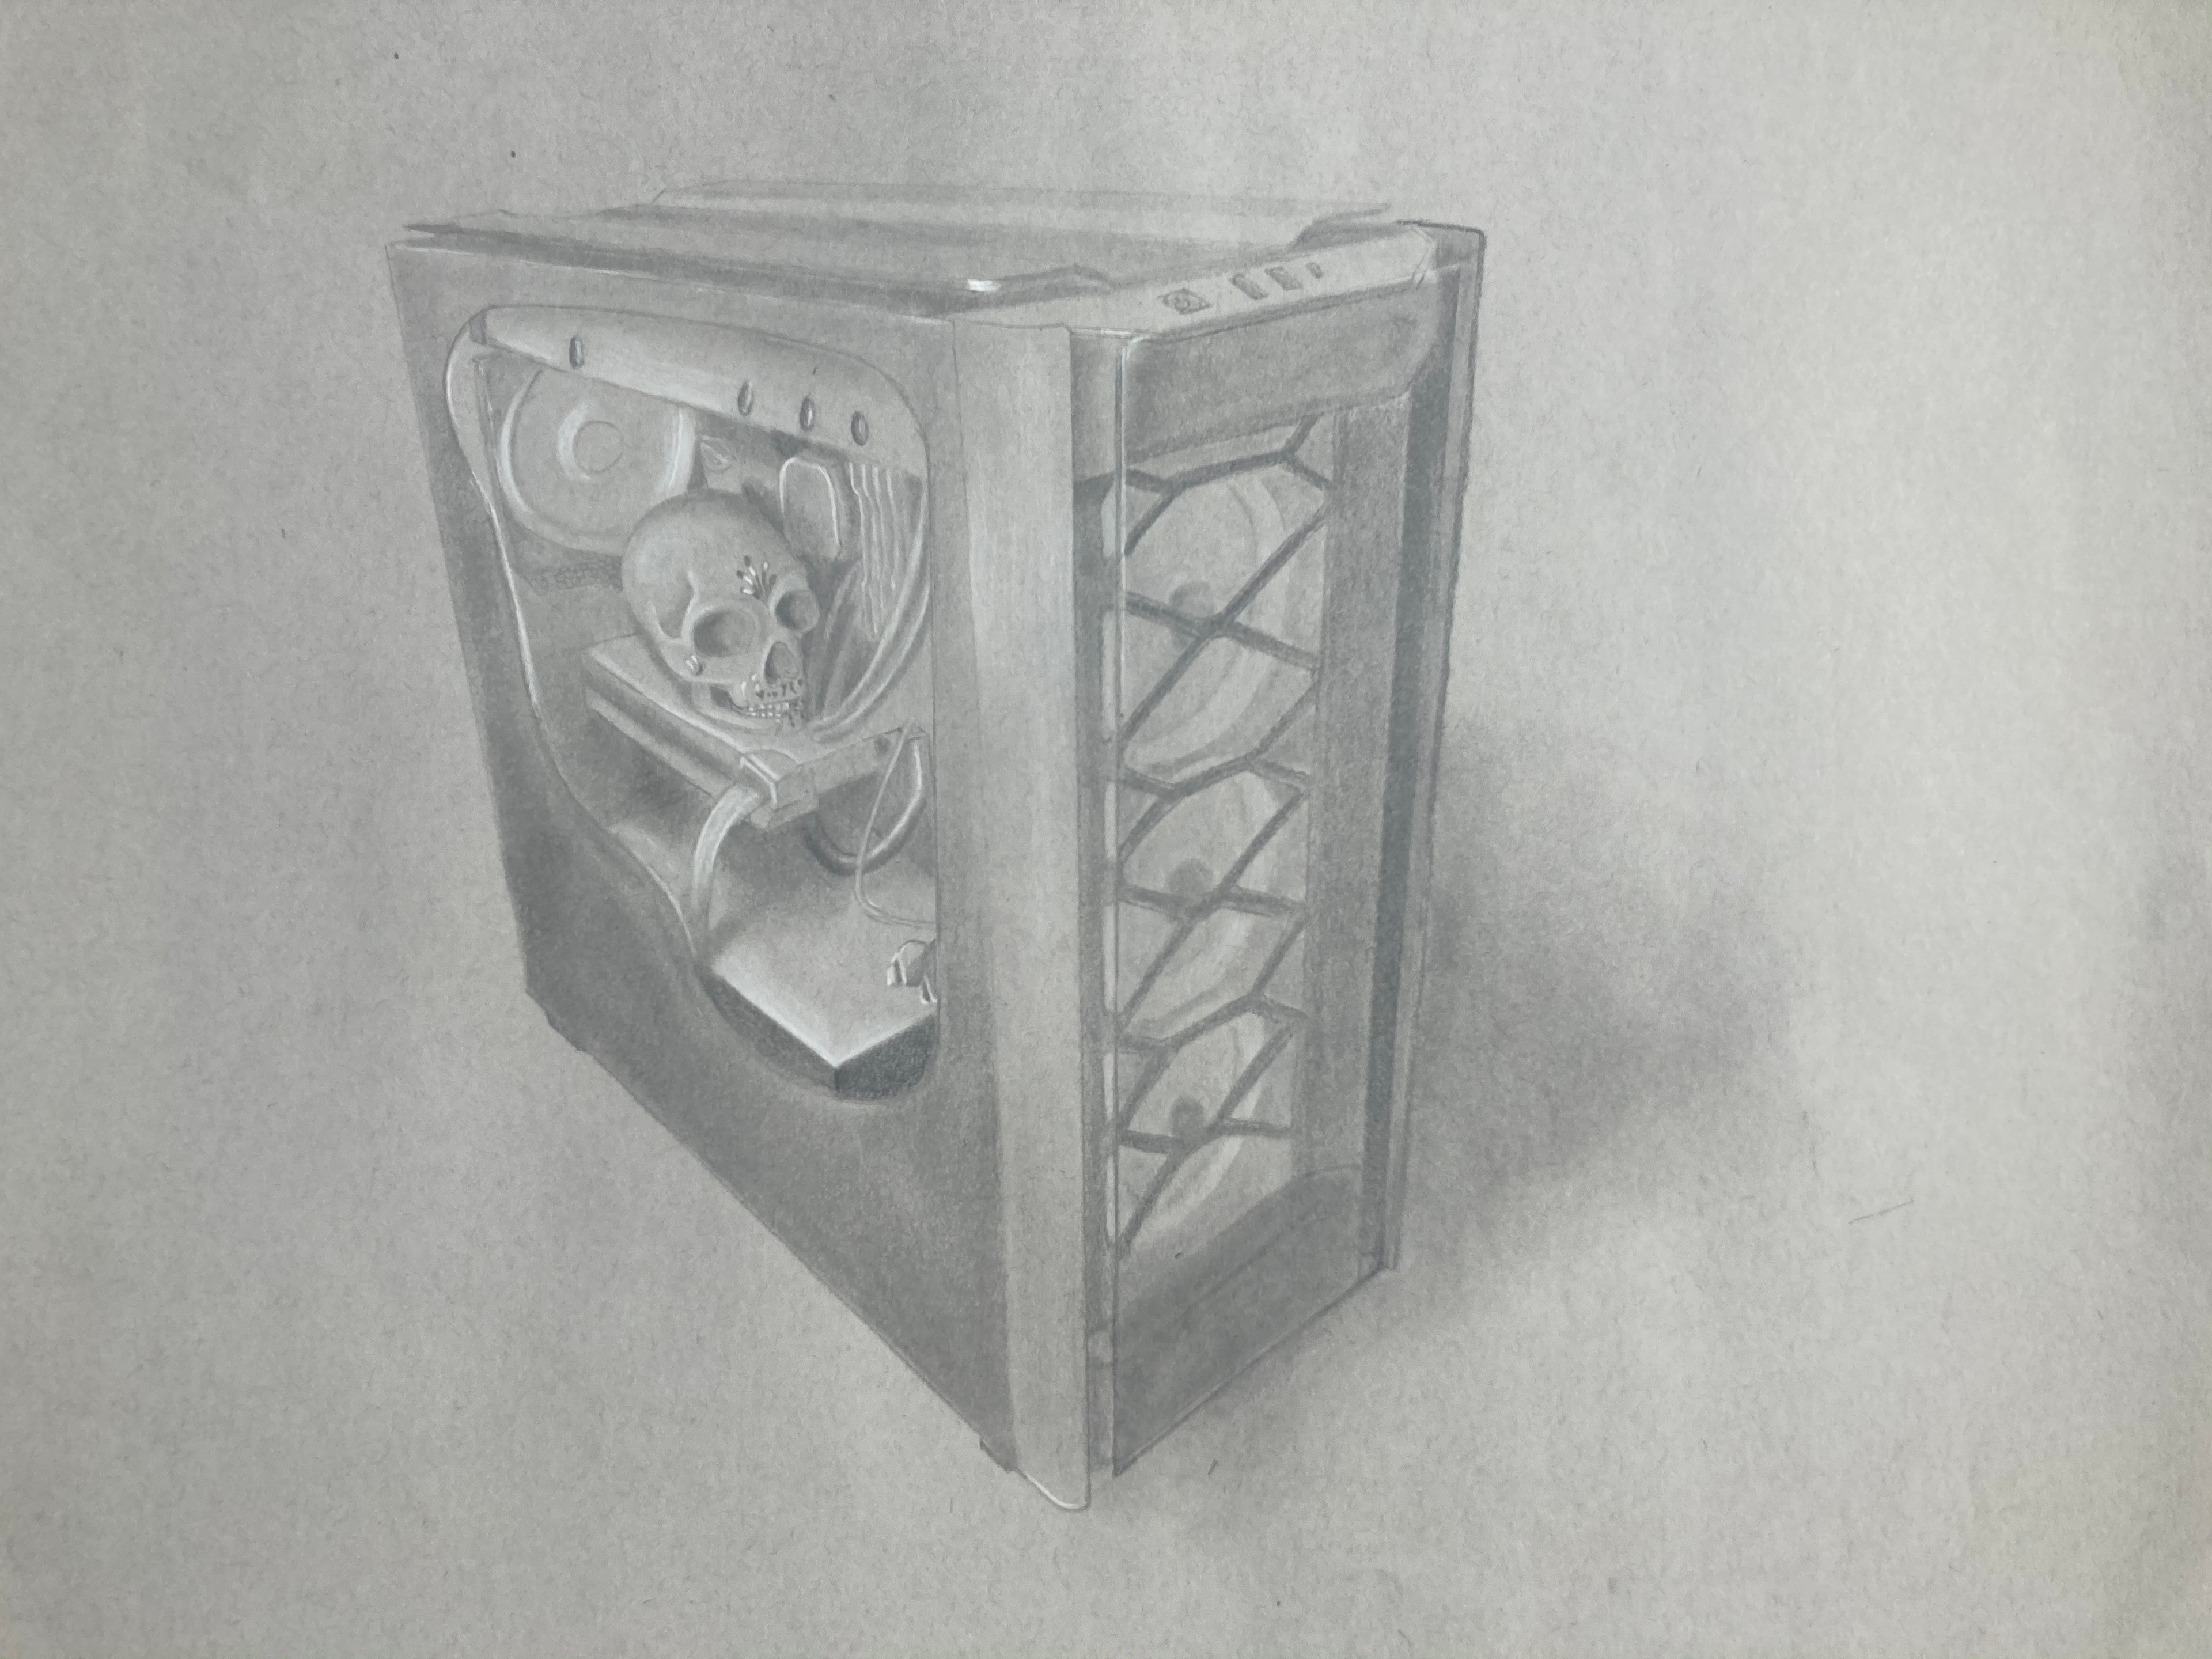 My PC with a cutout and a skull placed on the graphics card.